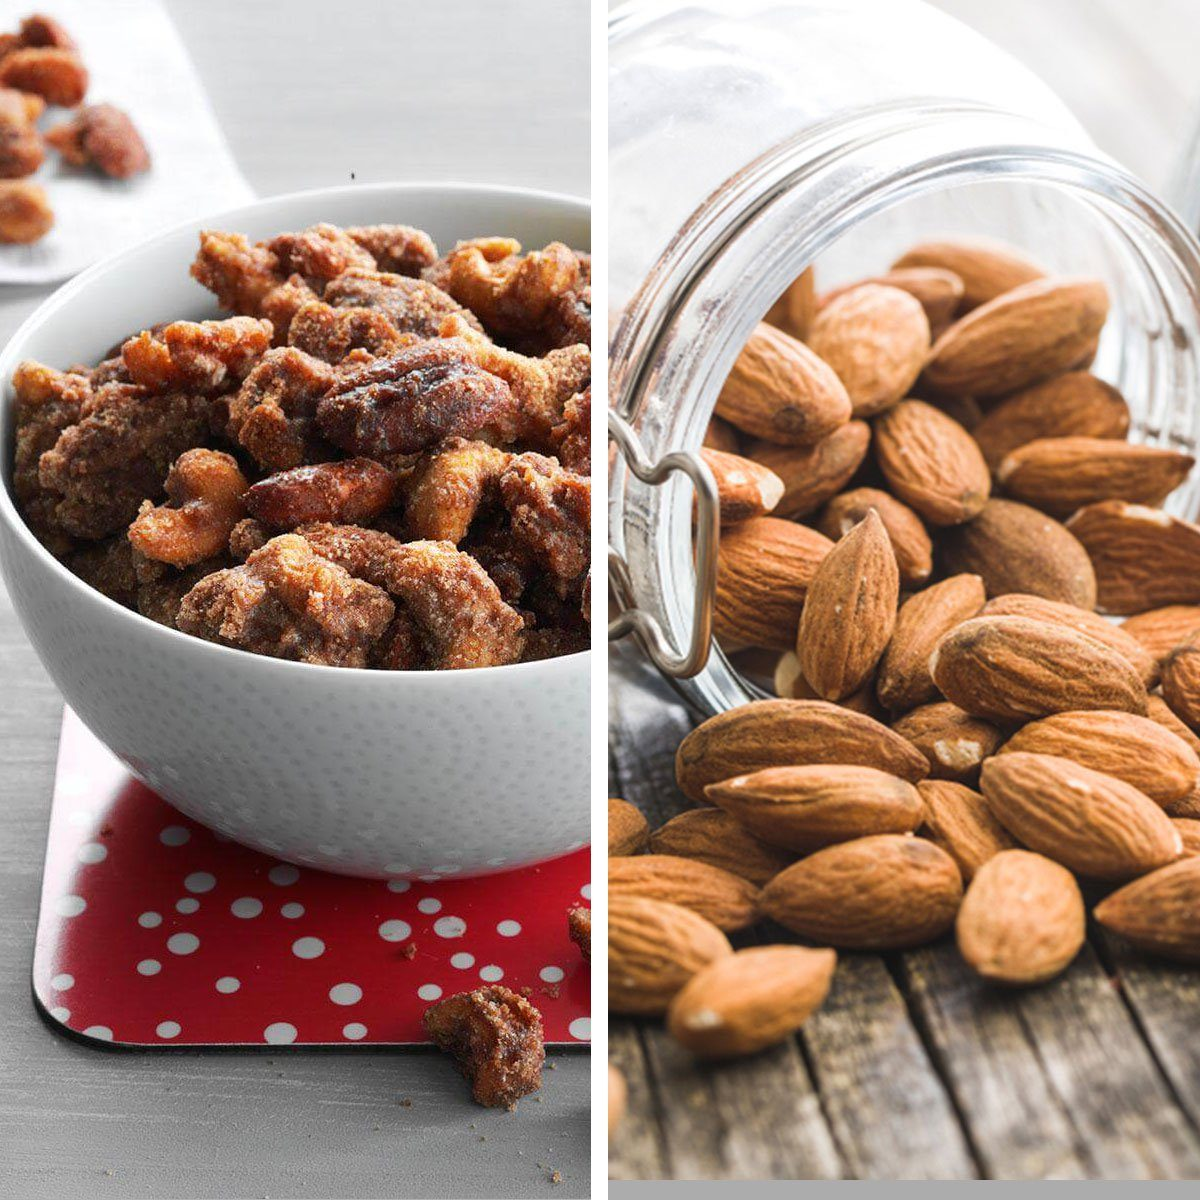 Two different kinds of nuts prepared differently